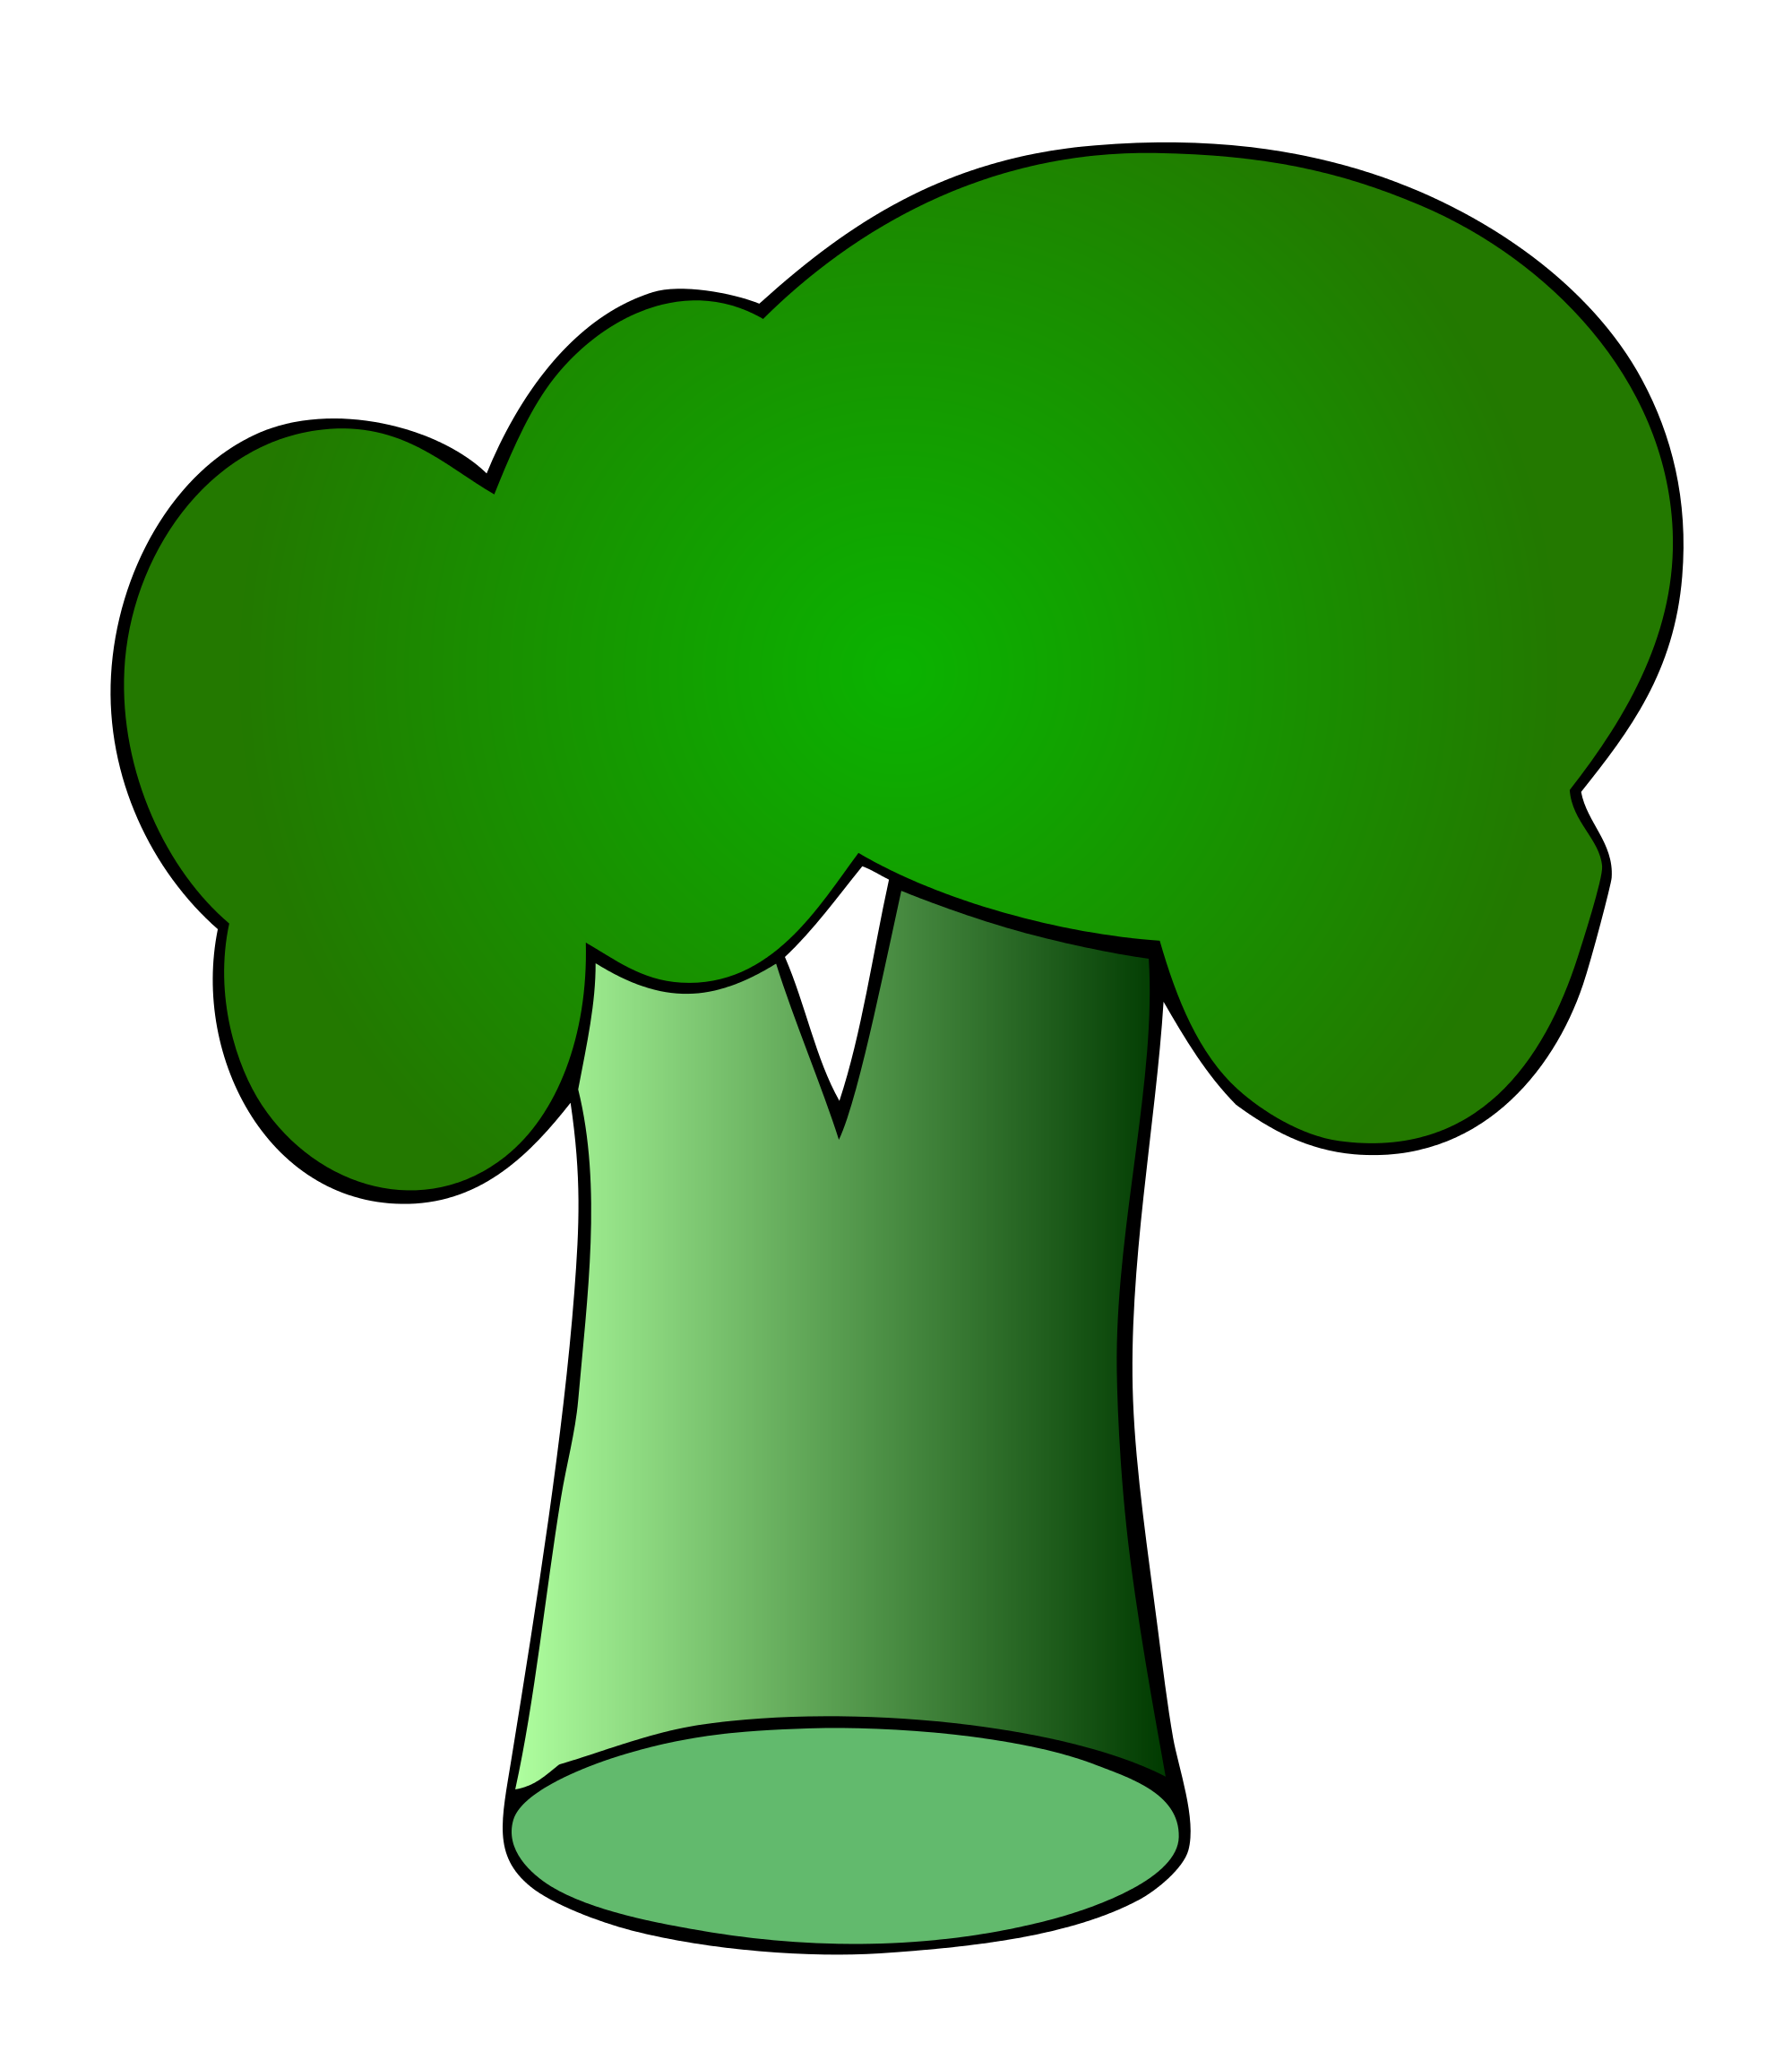 Broccoli clipart svg. File wikimedia commons open